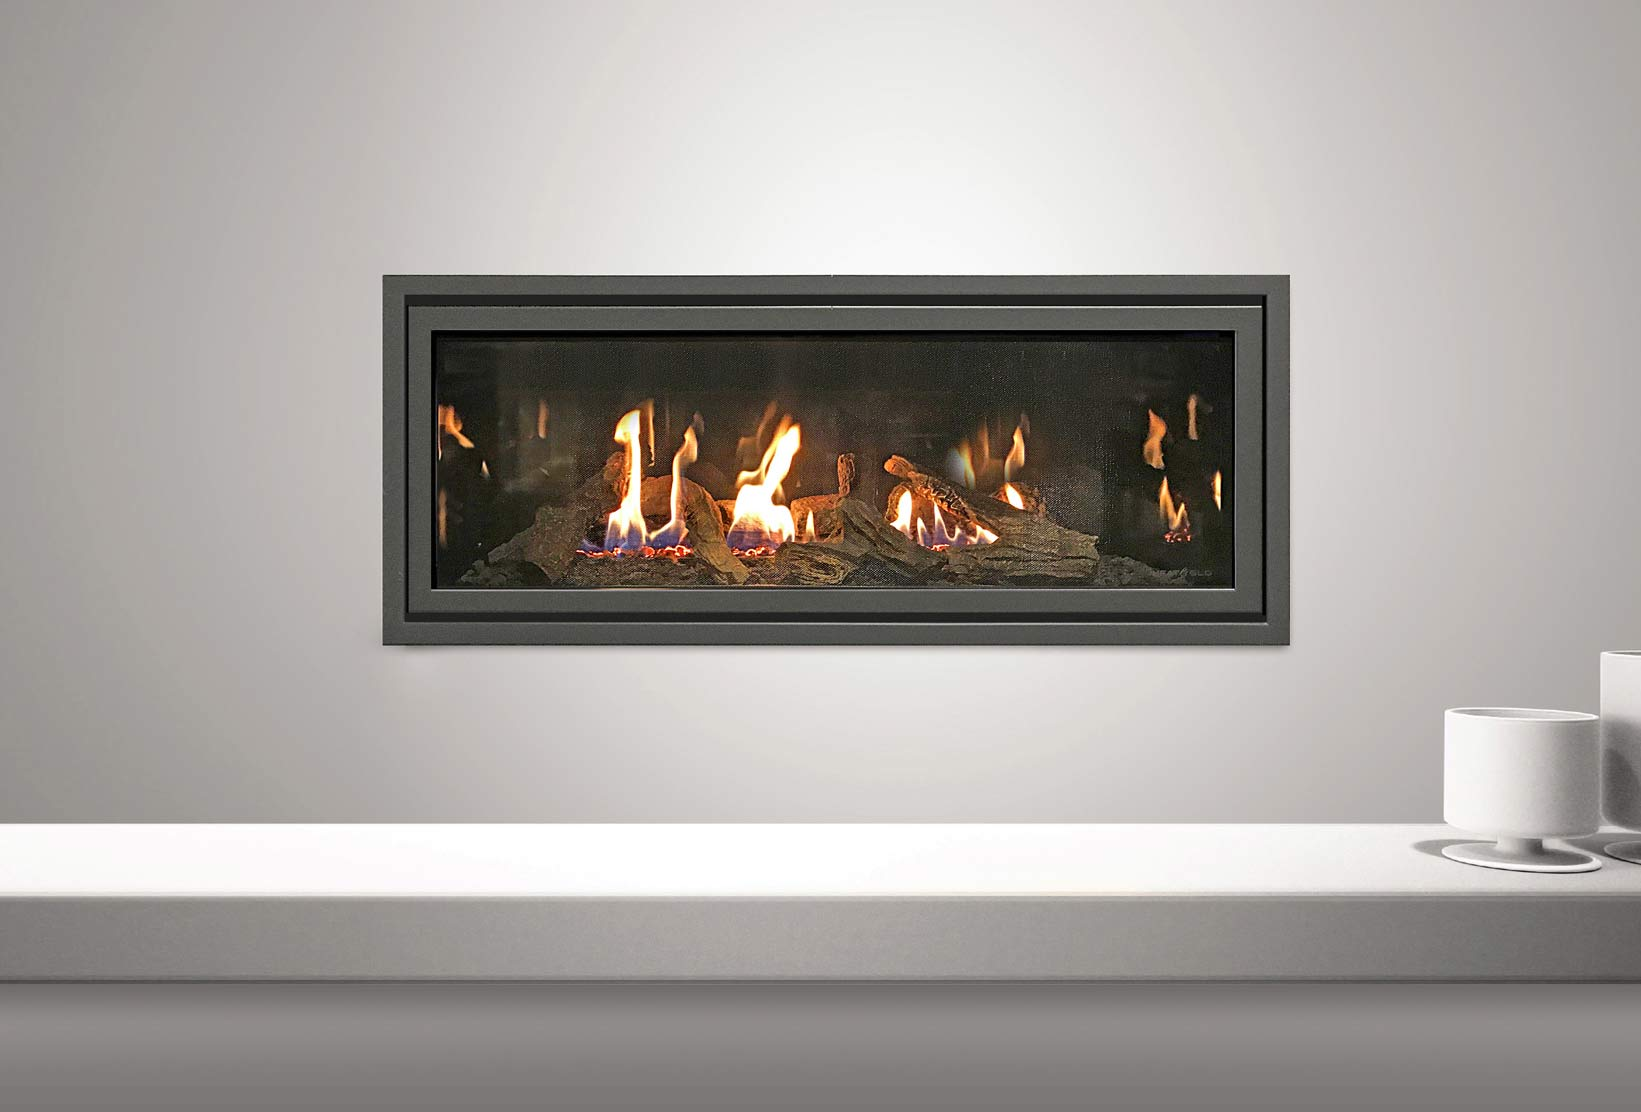 Jetmaster VIC the leader in fireplace technology and design